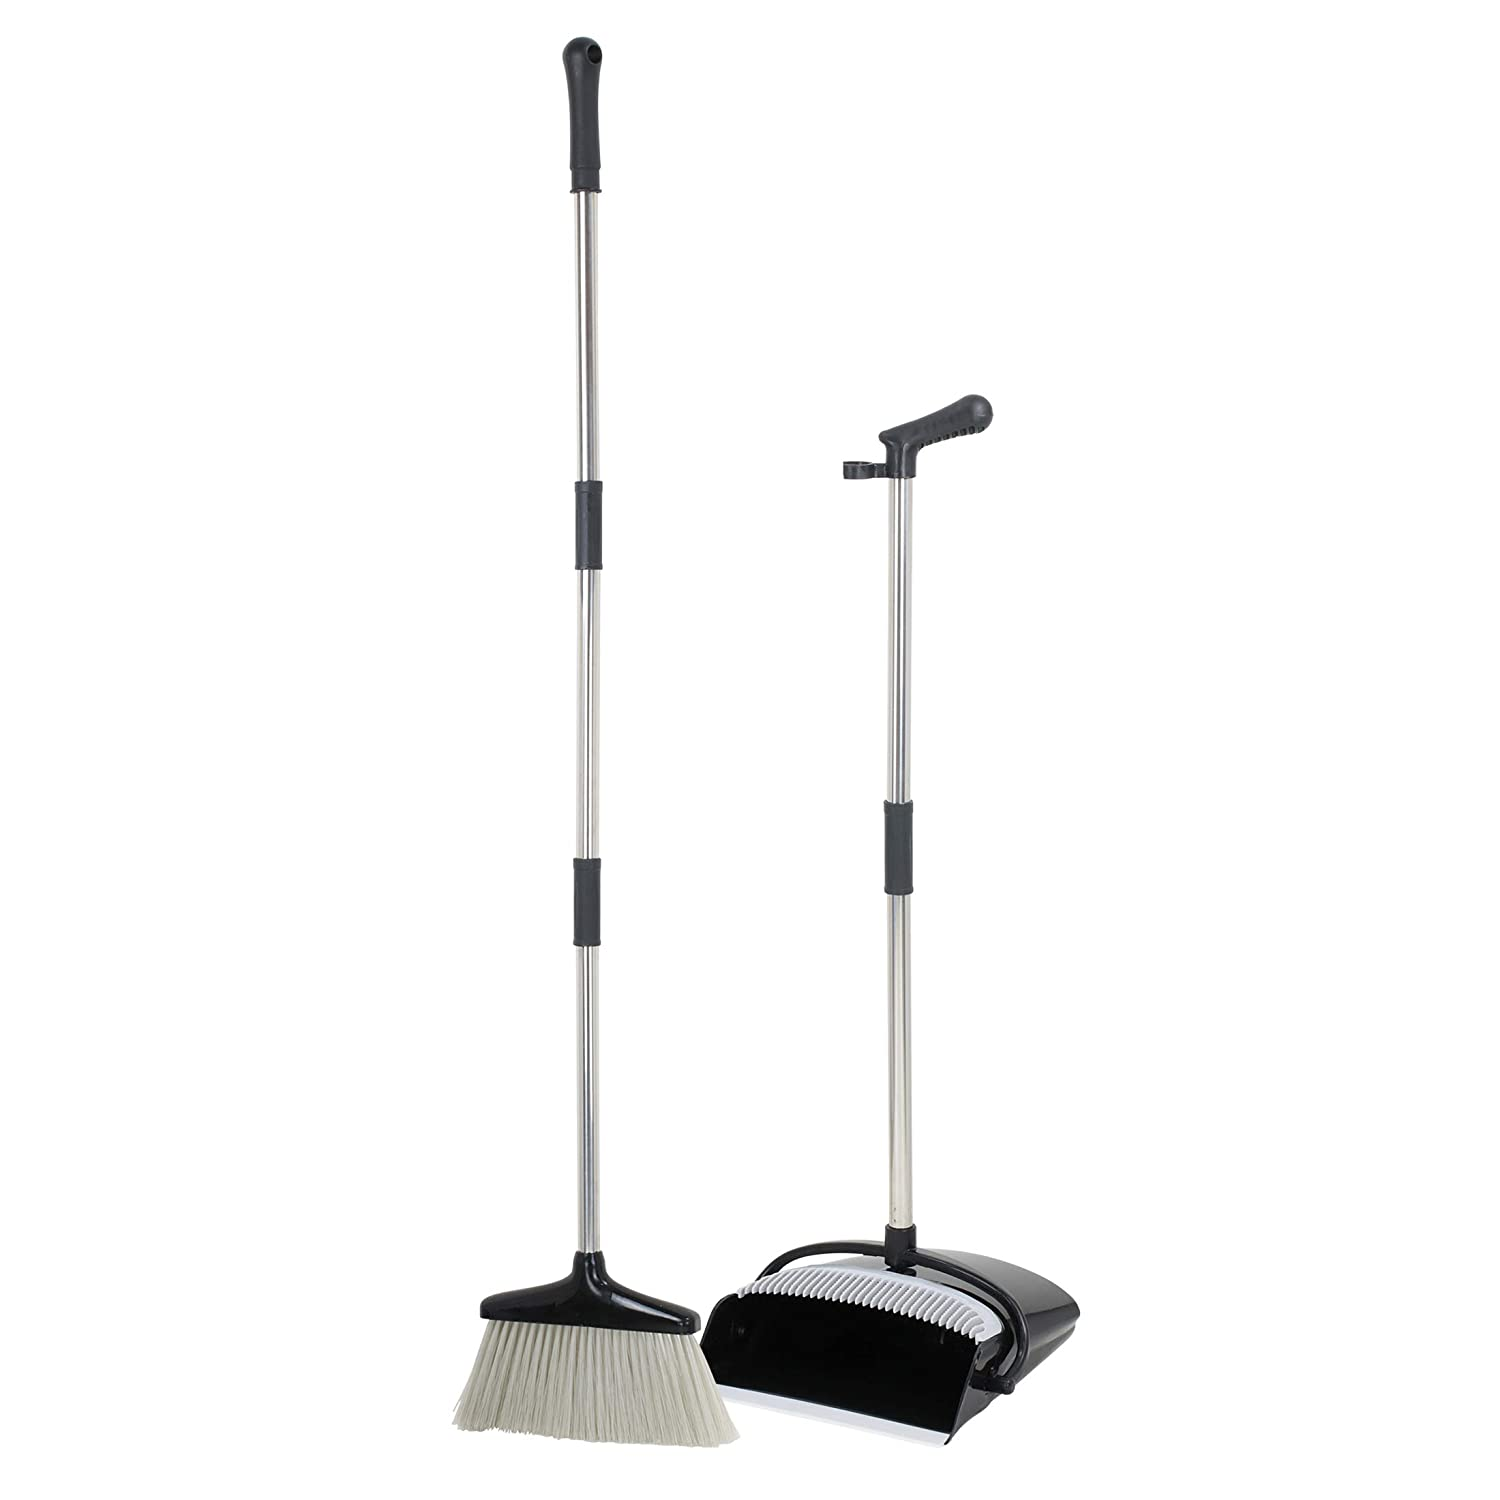 Broom and Dustpan Set for Home Kitchen Office Lobby Long Dust Pan Handle Stands Upright